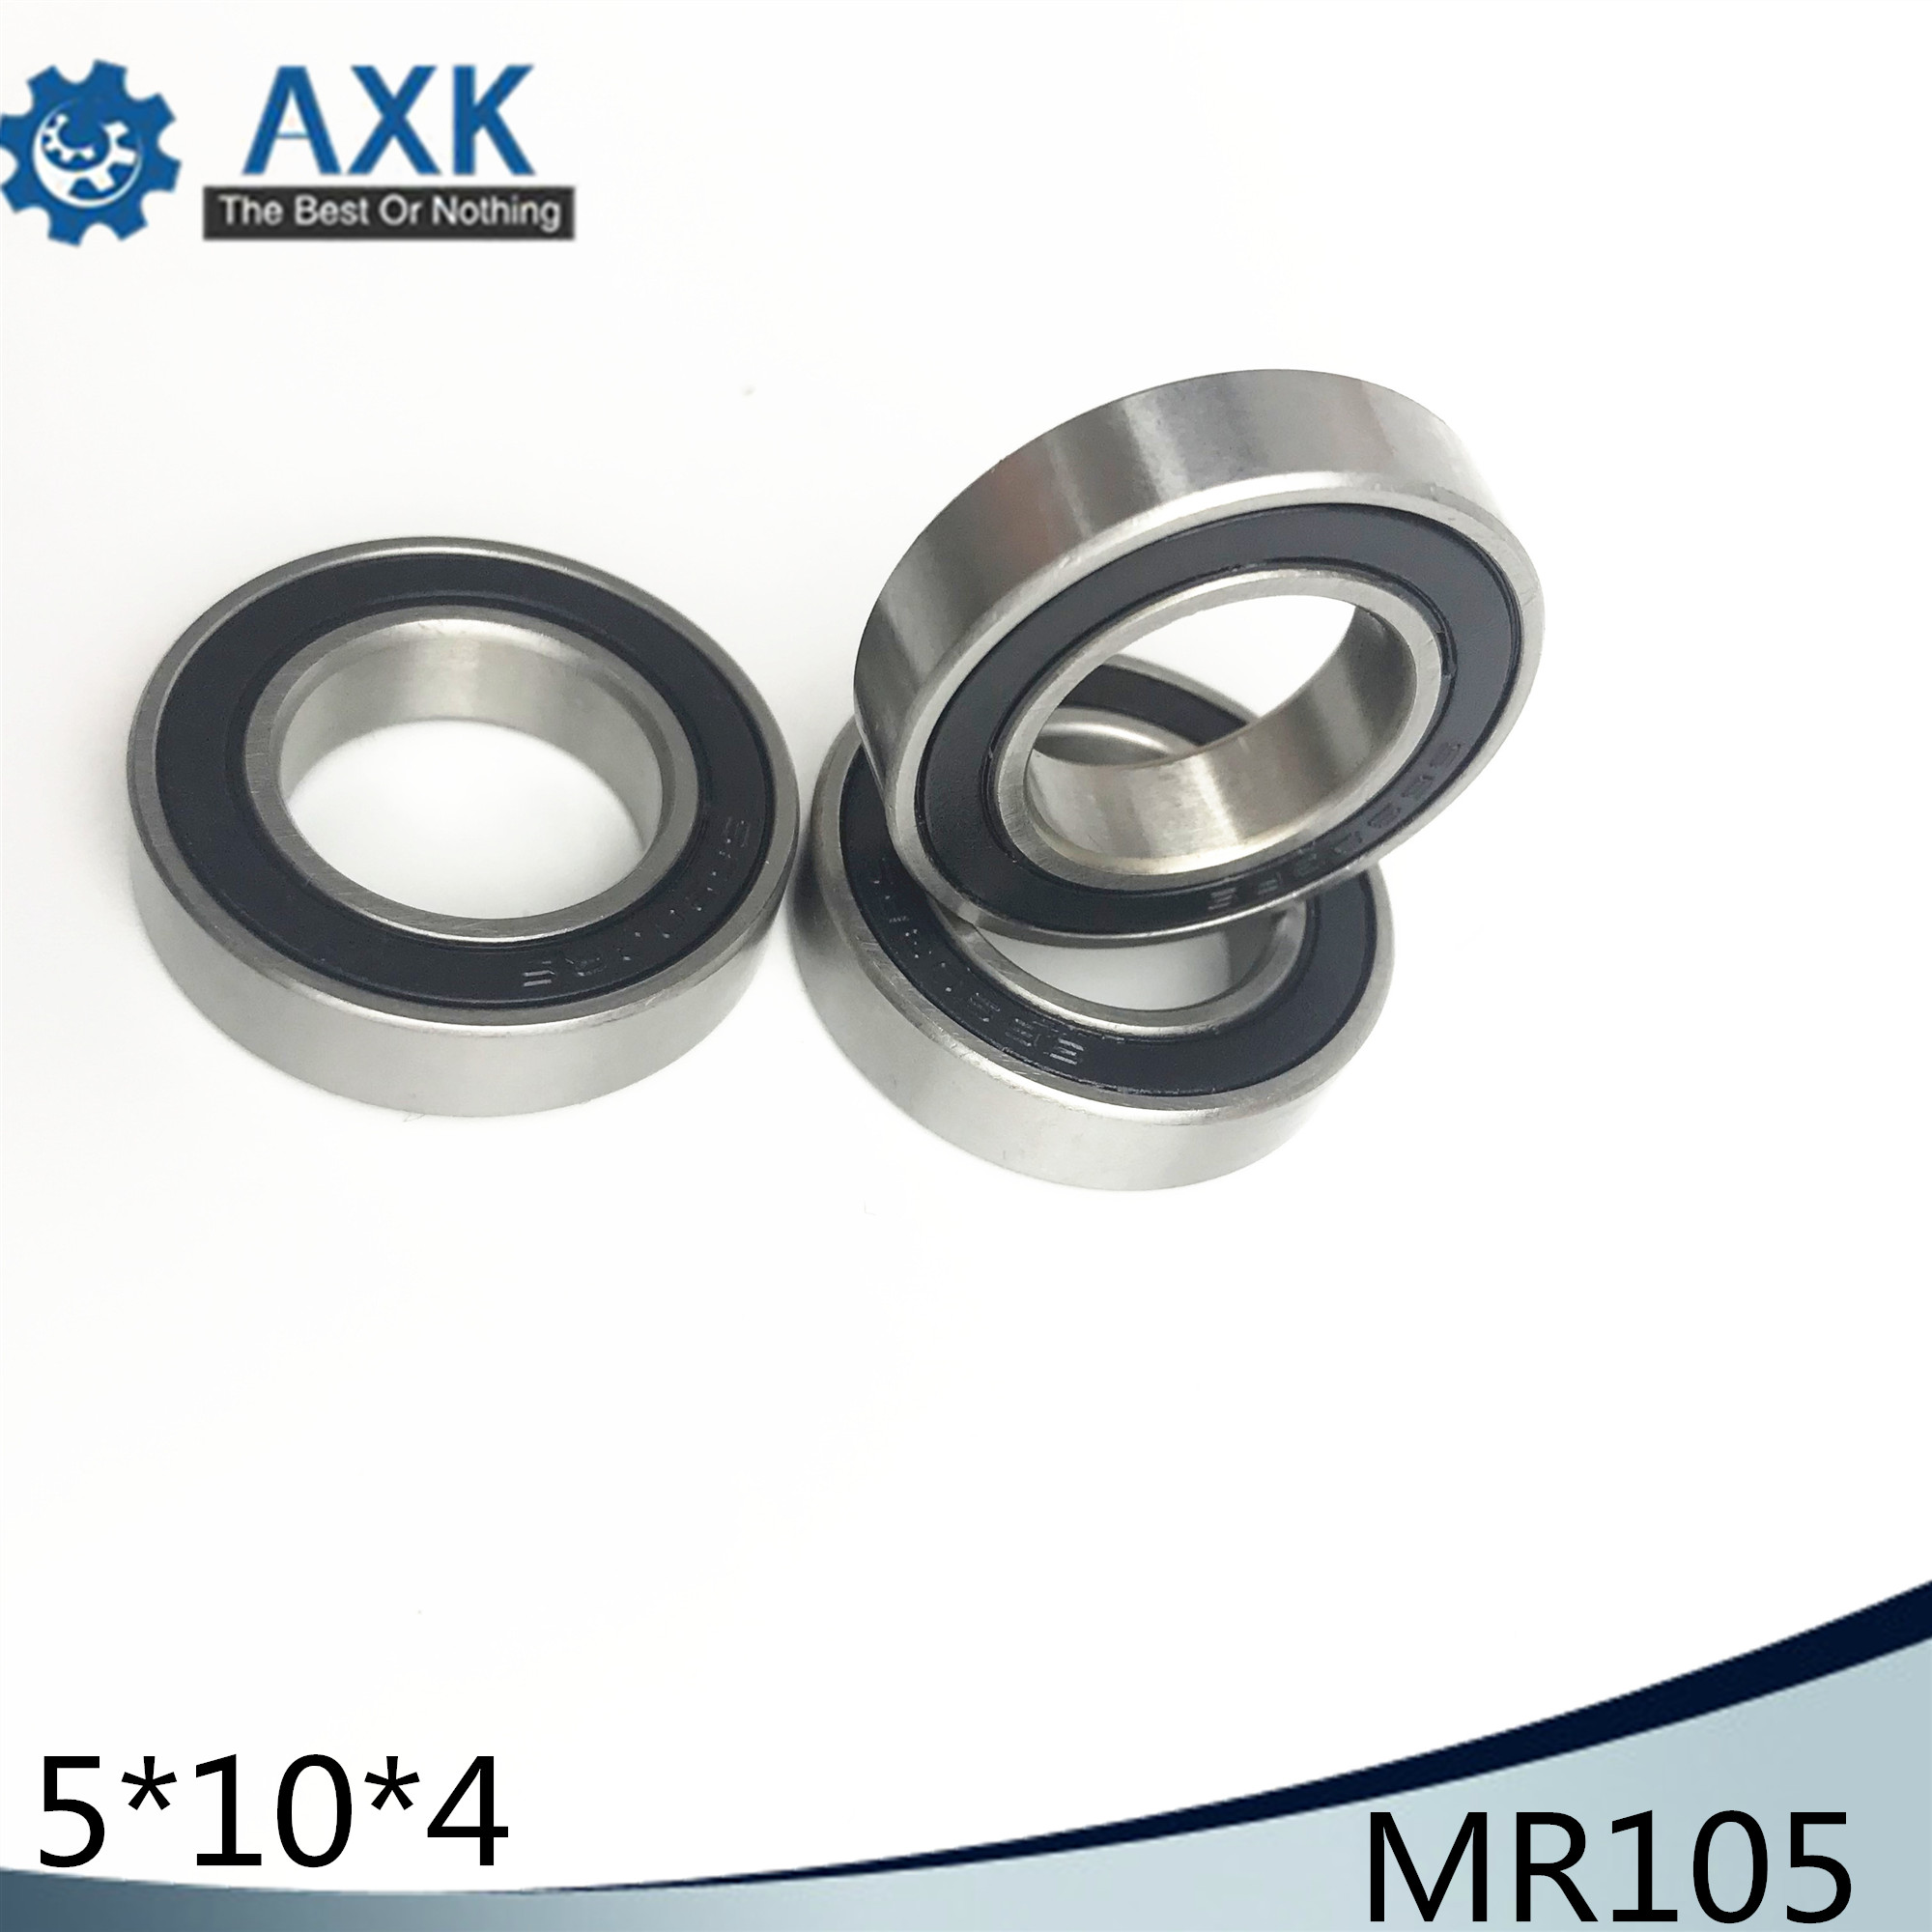 MR105 Hybrid Ceramic Bearing <font><b>5*10*4</b></font> mm ABEC-1 ( 1 PC) Industry Motor Spindle MR105HC Hybrids Si3N4 Ball Bearings 3NC MR105RS image